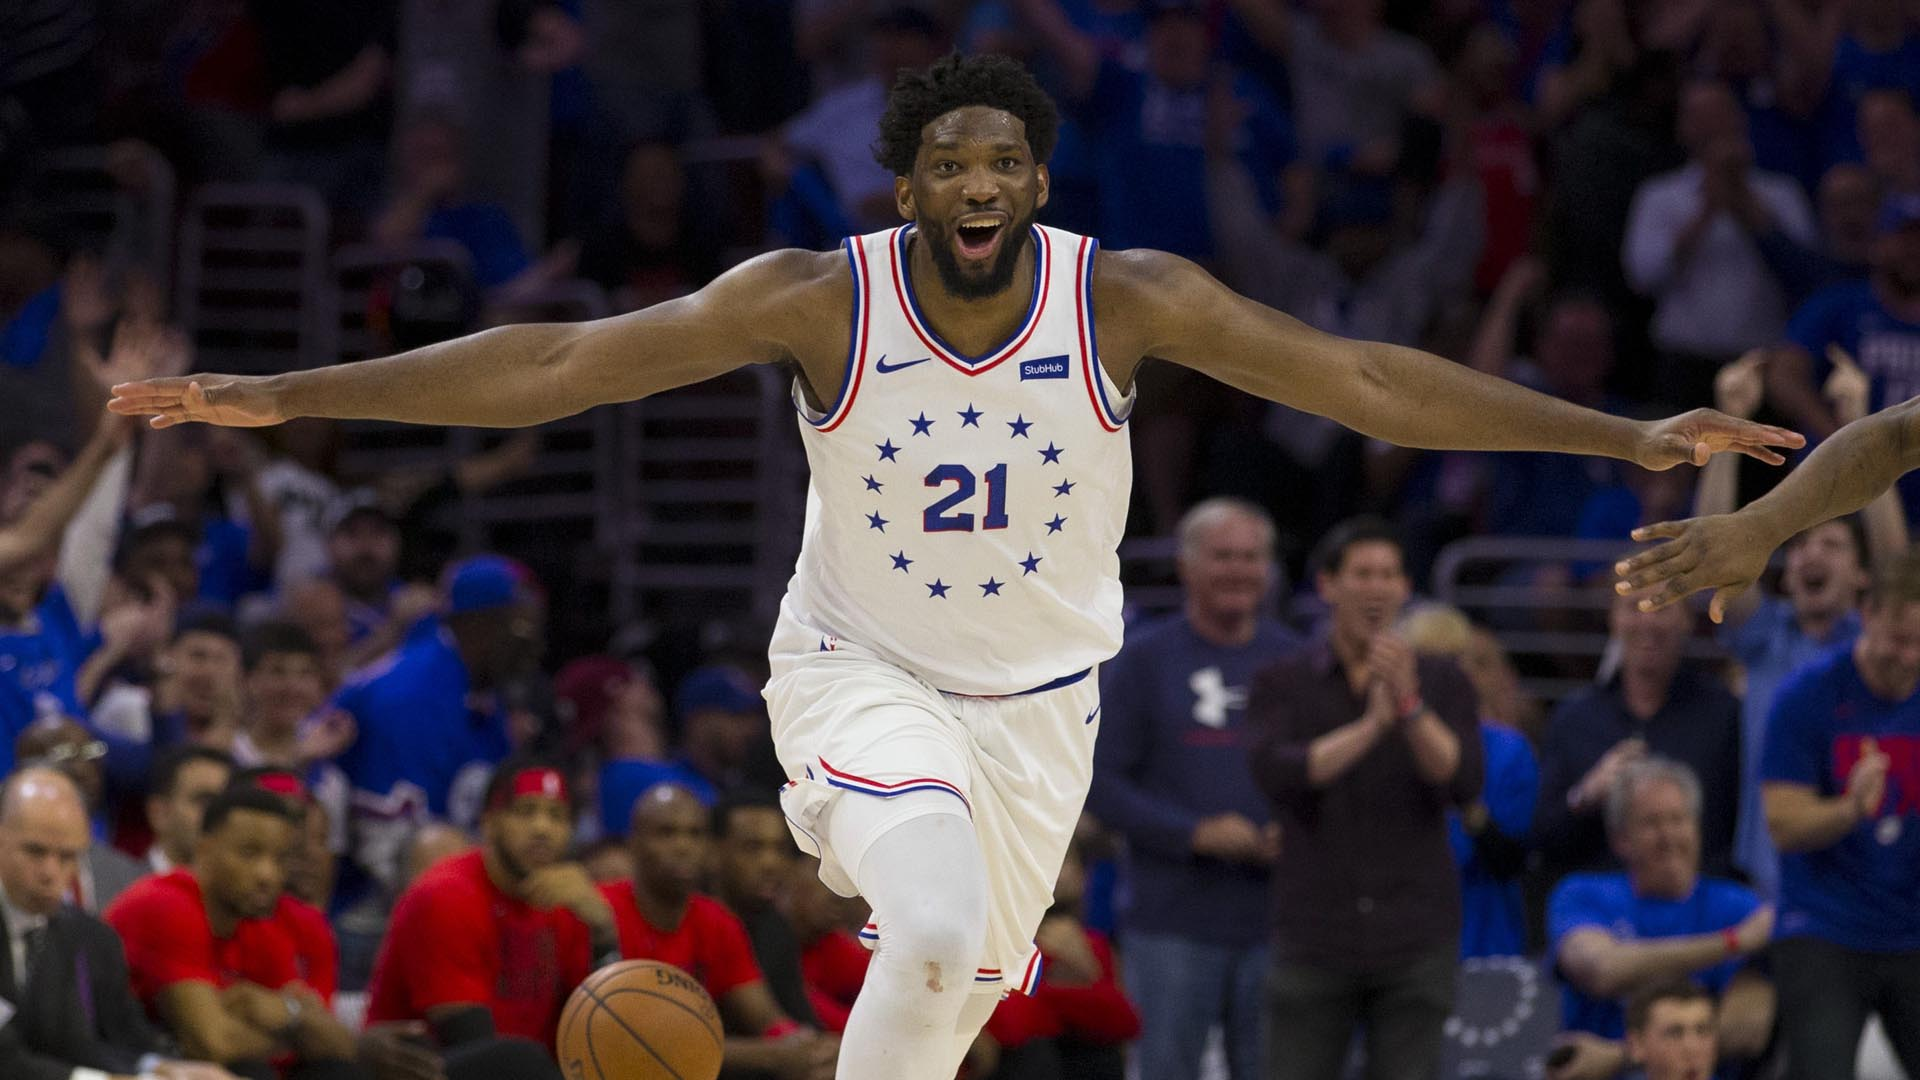 Purchase Joel Embiid NBA Jerseys From Nike Through Lemoney